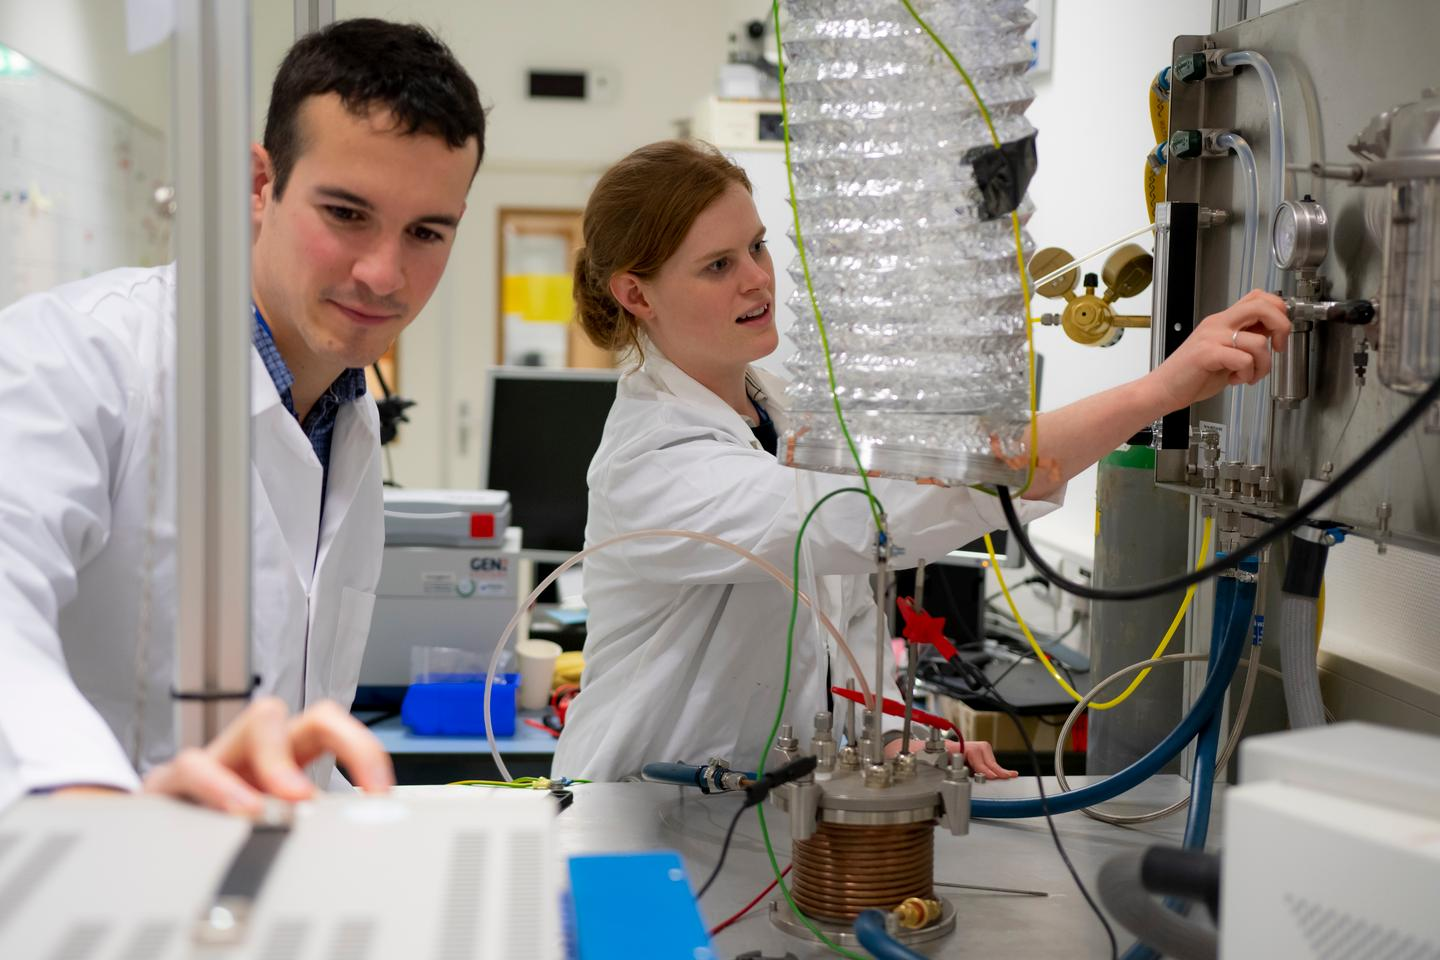 Researchers Alexandre Meurisse (left) and Beth Lomax (right) making oxygen out of lunar regolith